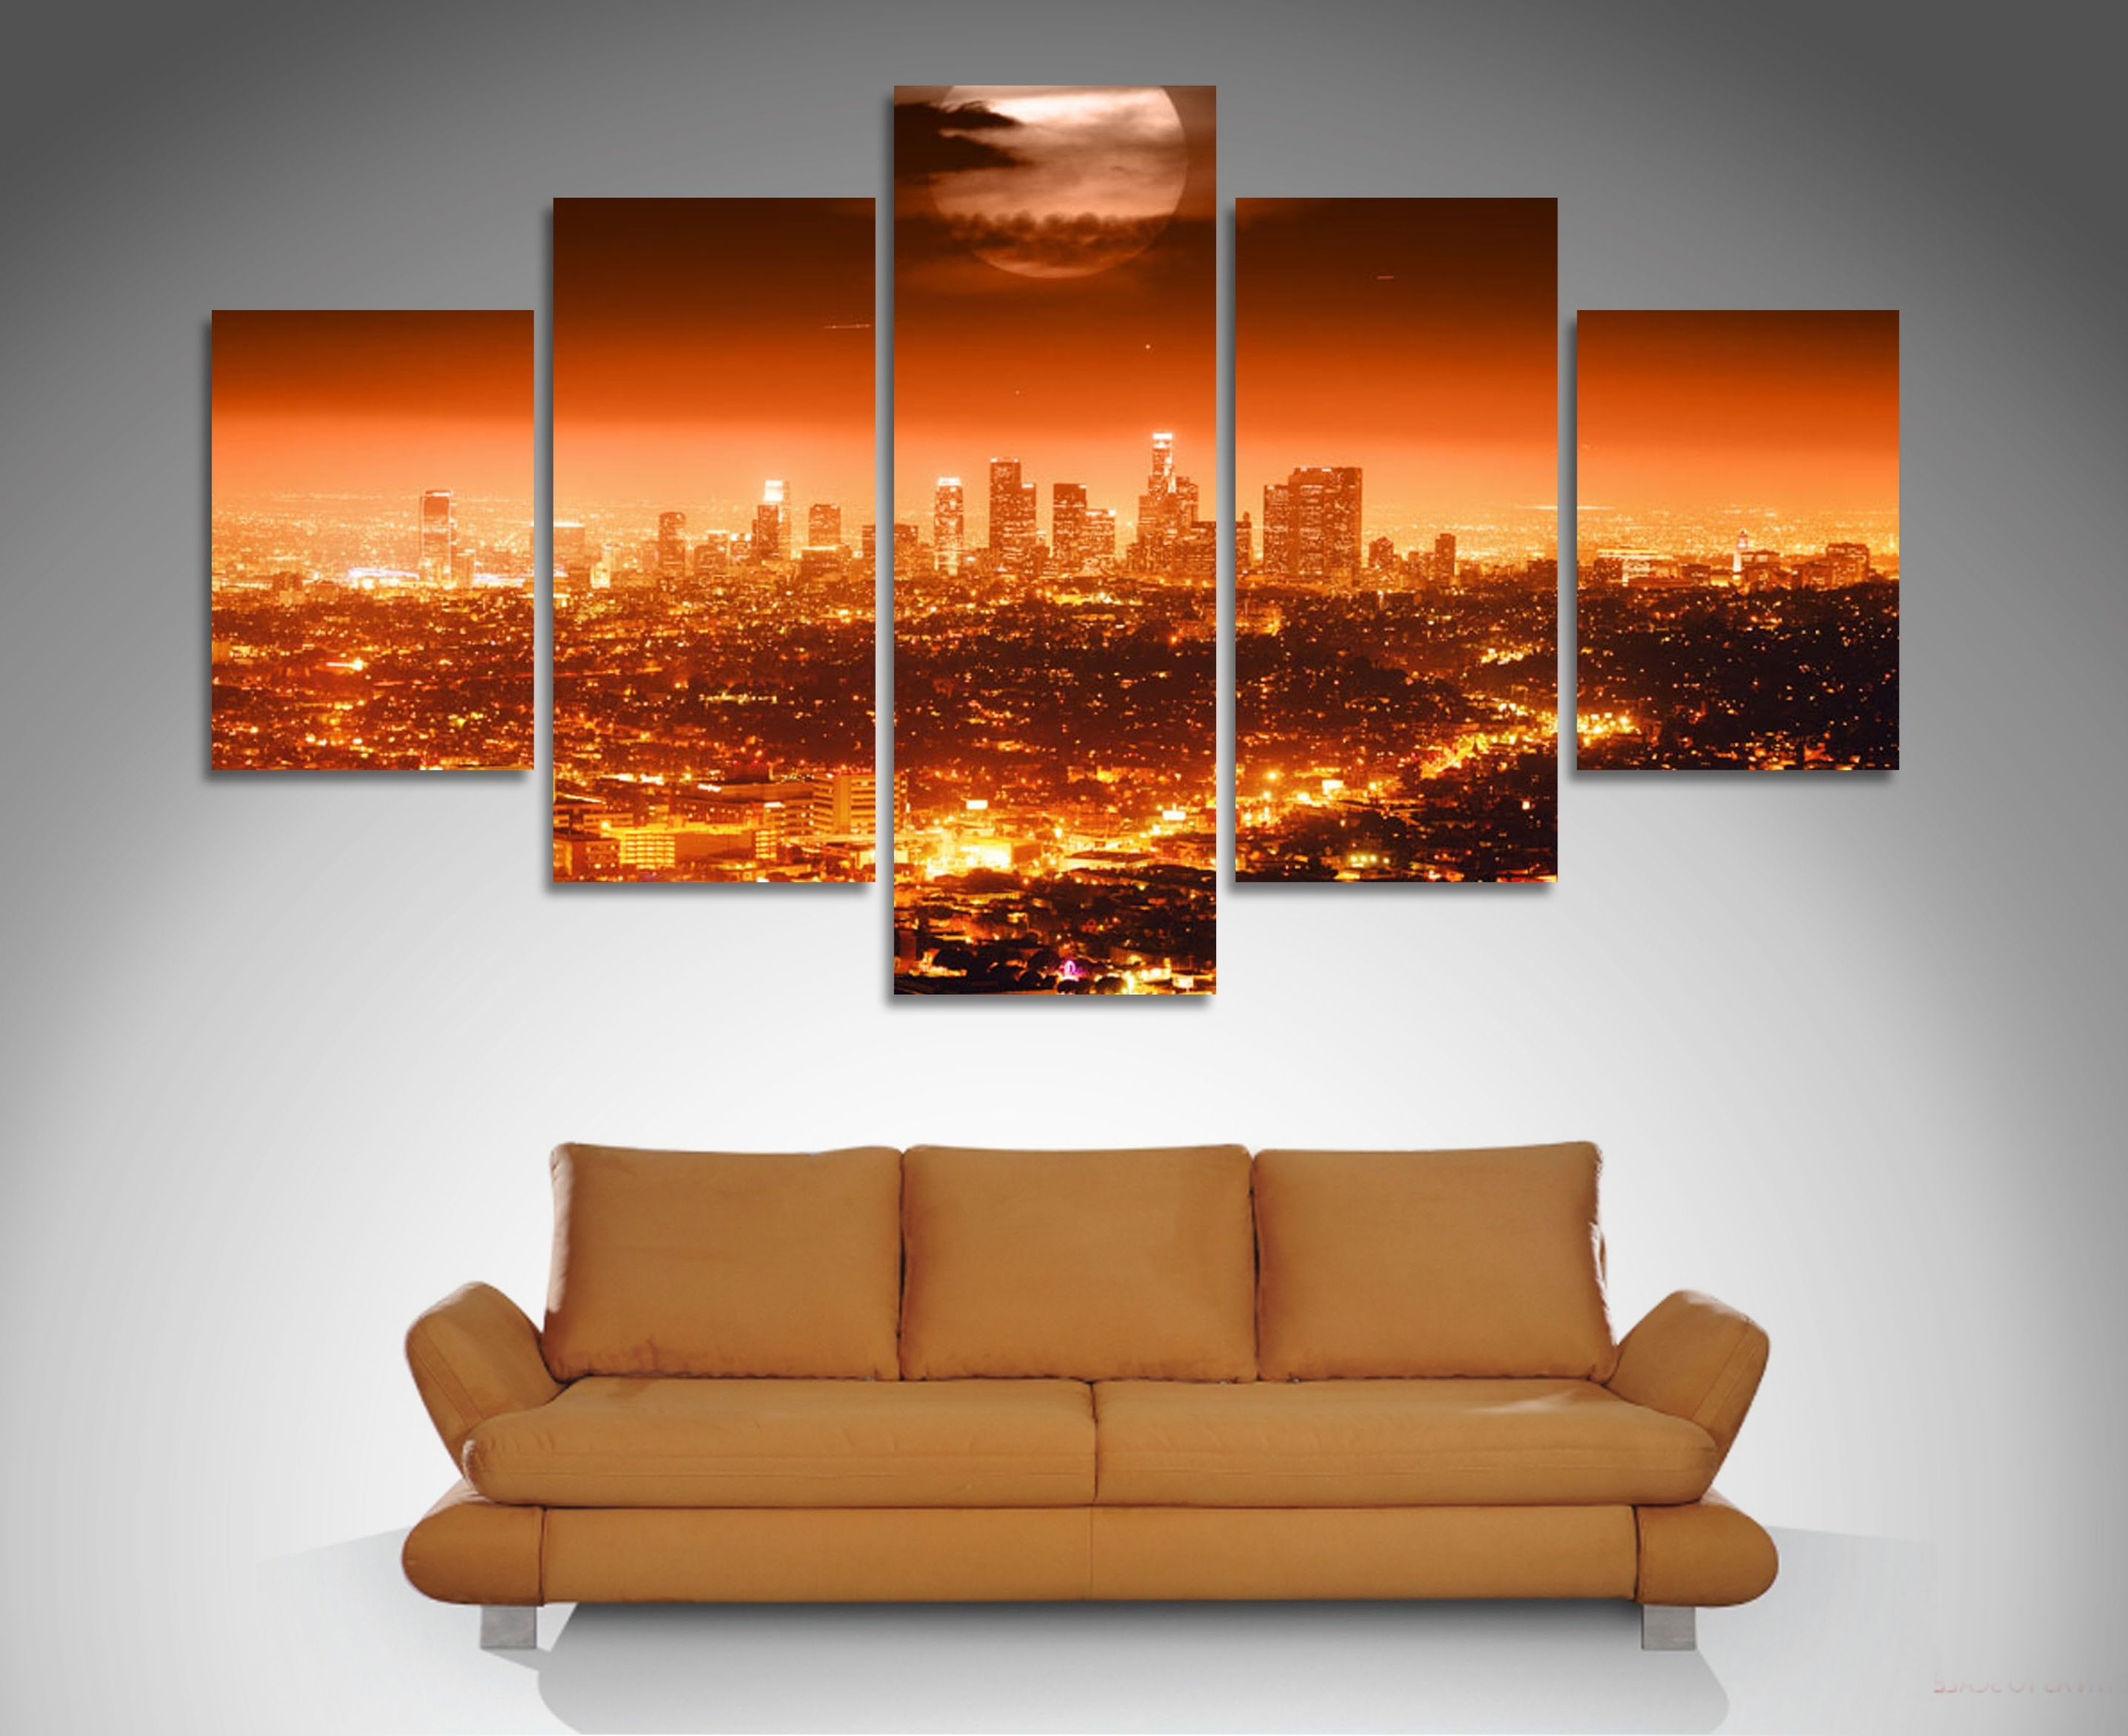 Los Angeles Wall Art Regarding Well Known Los Angeles 5 Panel Wall Art Canvas Print (View 10 of 15)